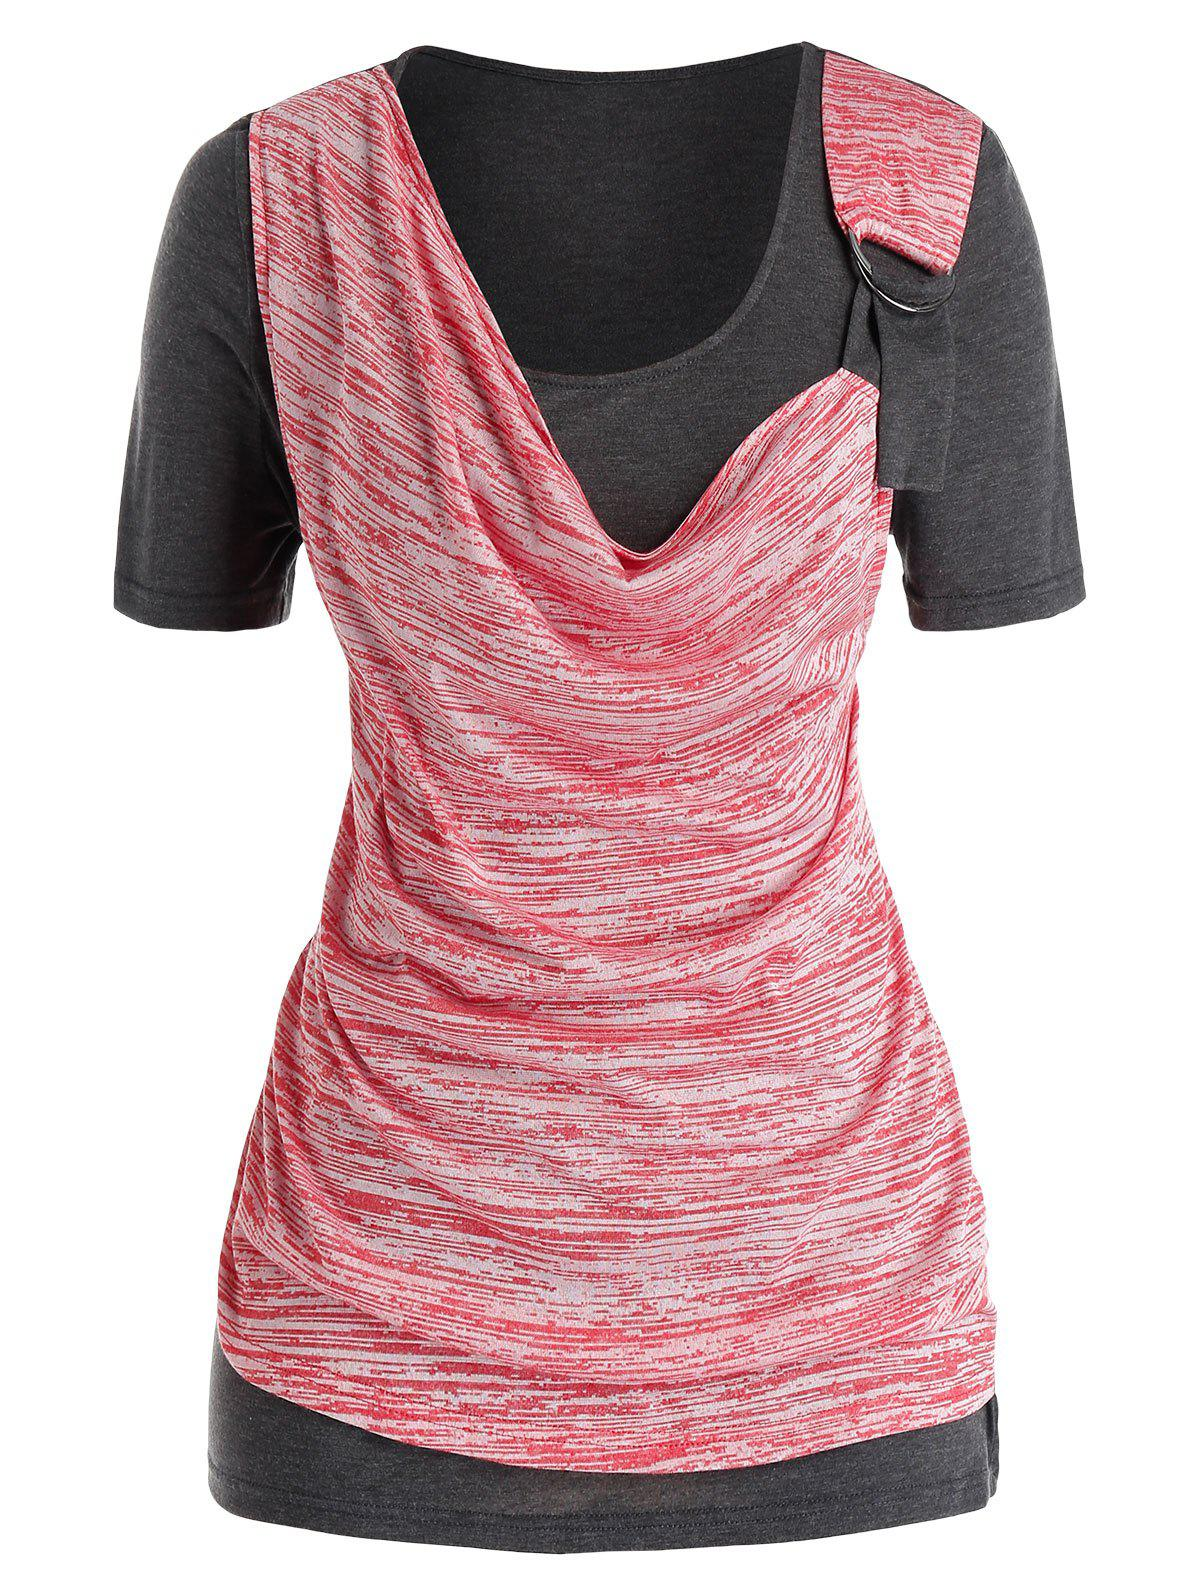 Space Dye Cowl Front O Ring Plus Size Top - WATERMELON PINK 3X